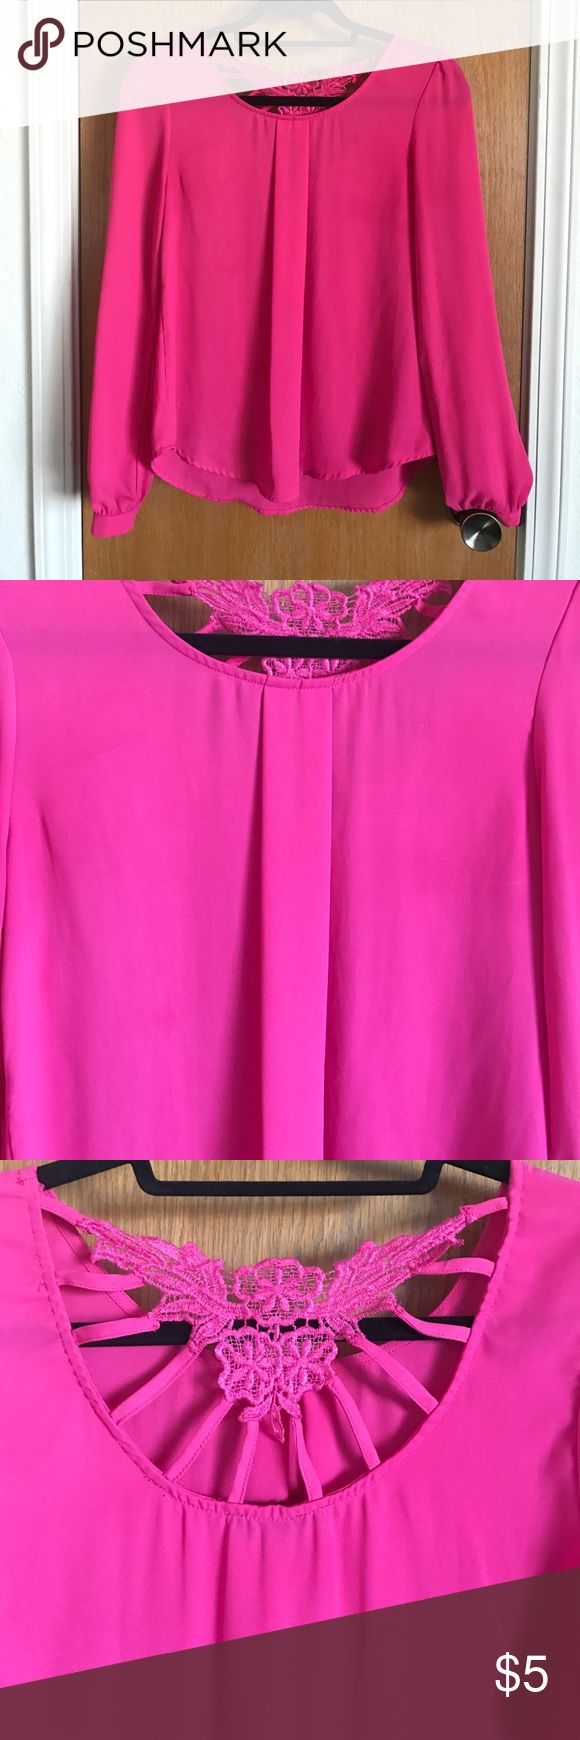 Pink blouse with lace cutout Hot pink blouse with lace cutout on the back. Great for the office or a night out. Long sleeves with pink button. Size small Tops Blouses